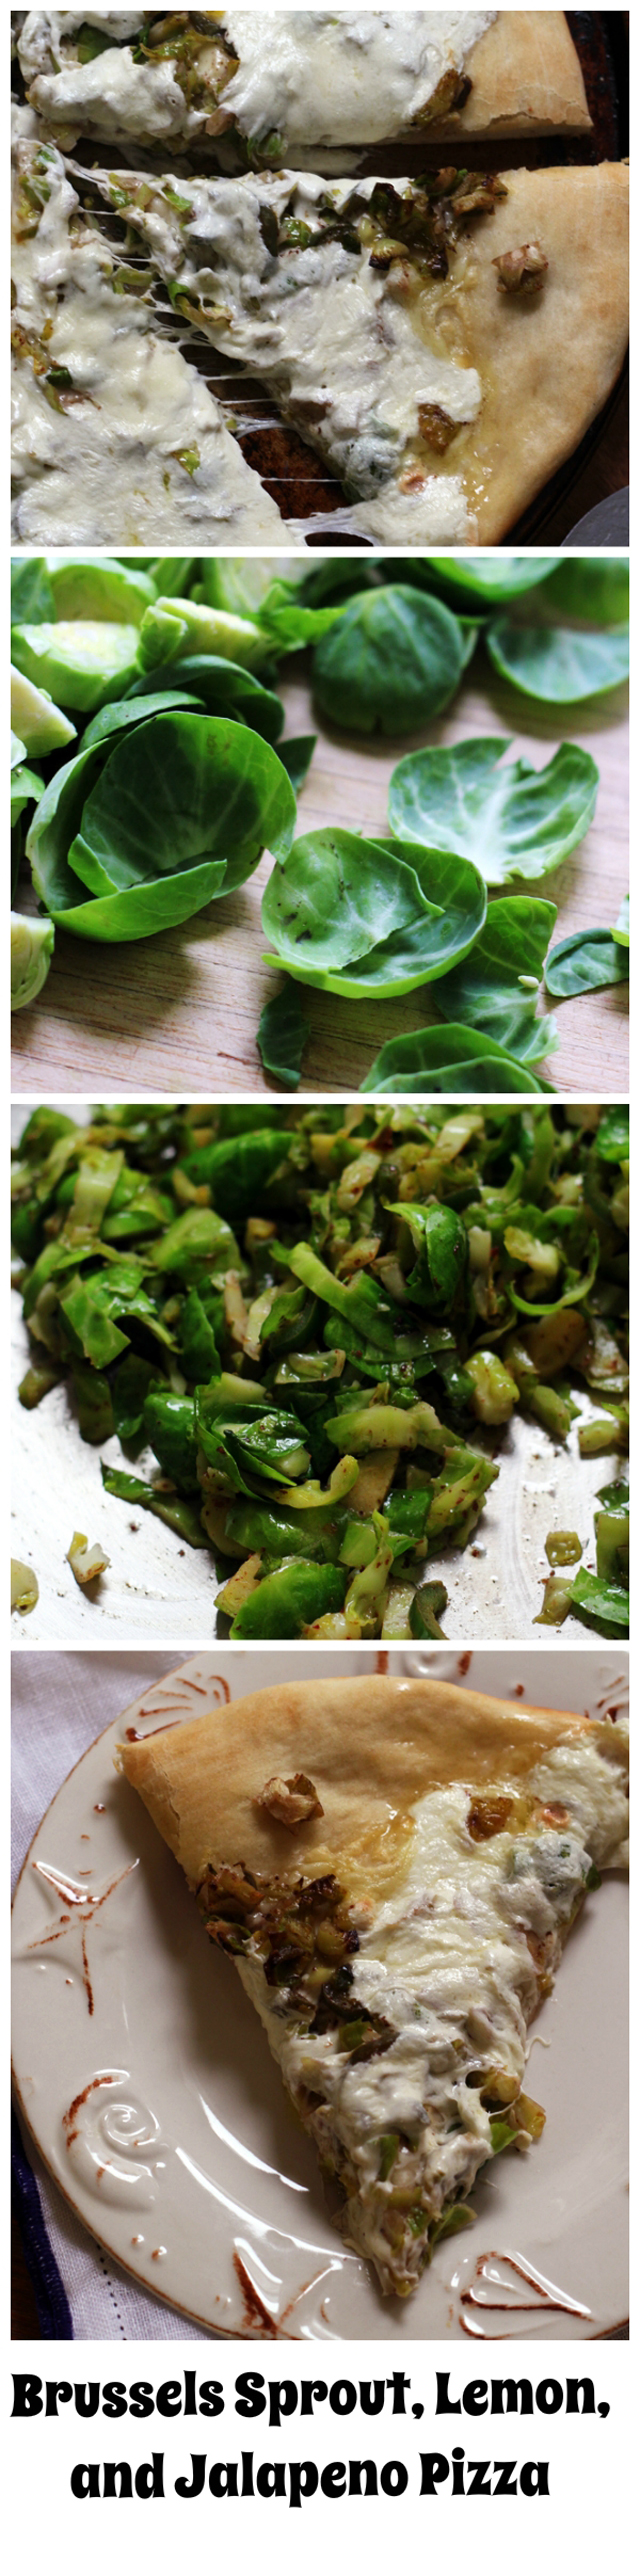 brussels sprout, lemon, and jalapeno pizza